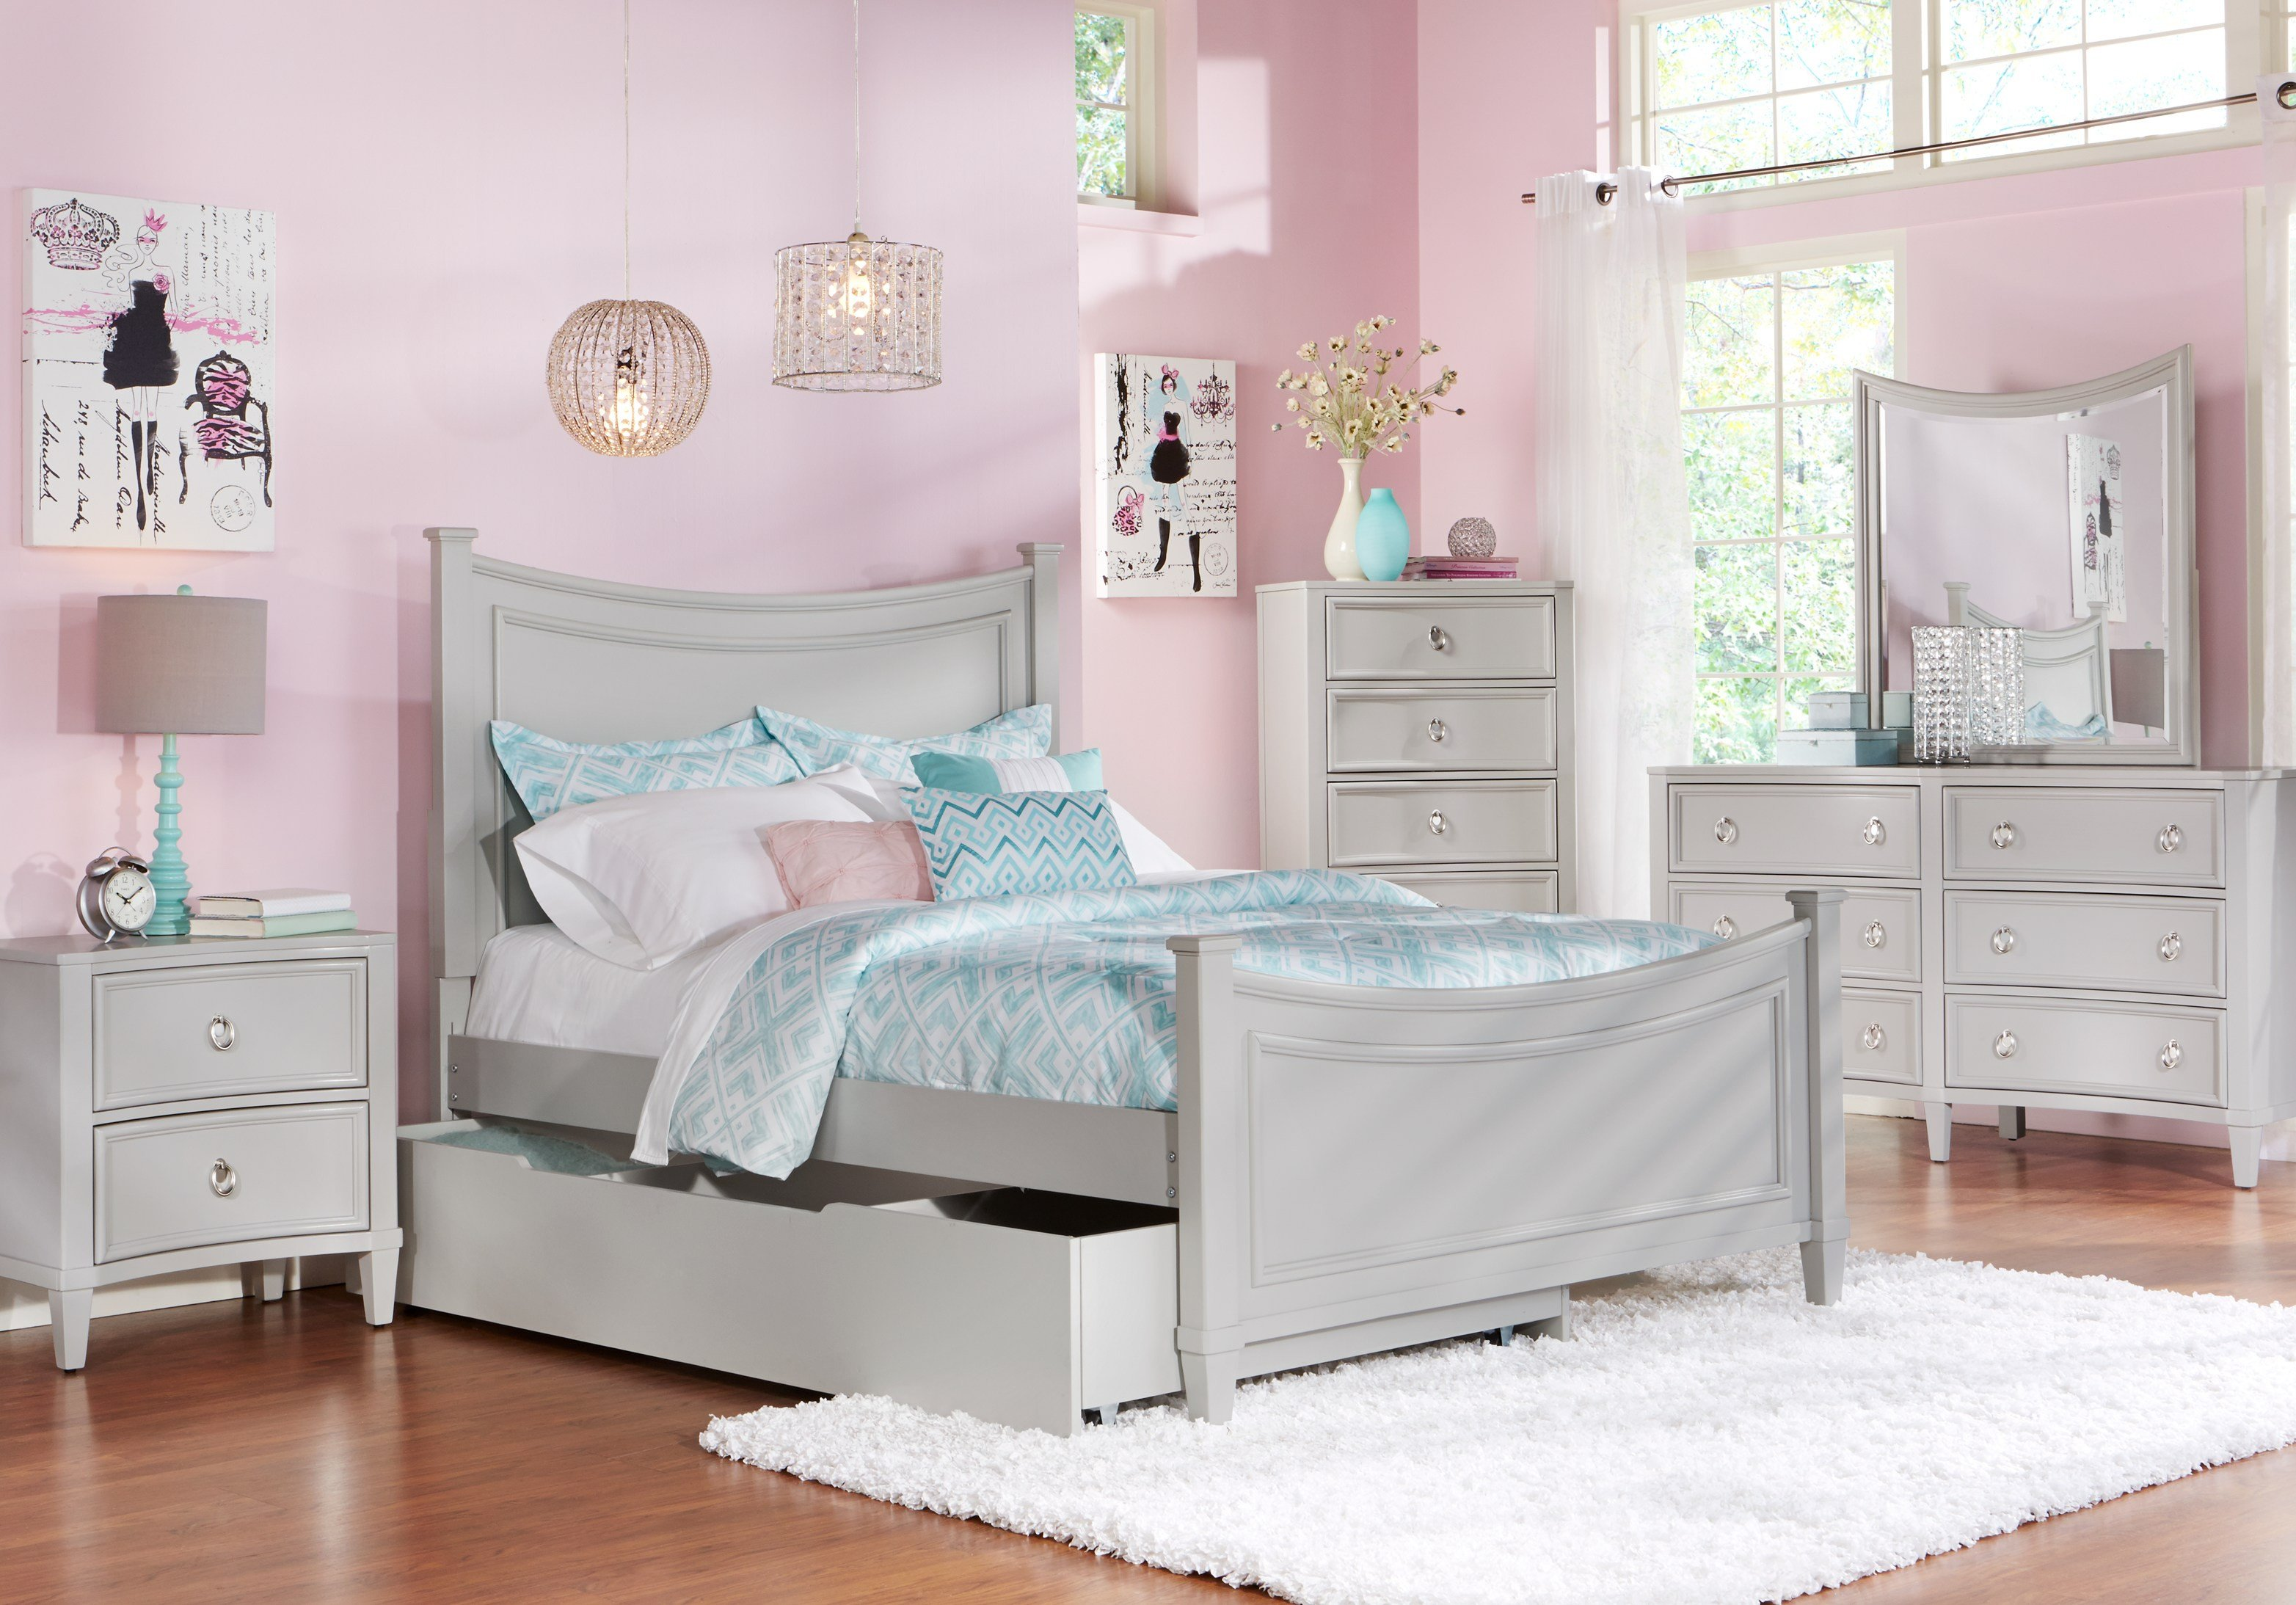 Rooms to Go Kid Bedroom Set Fresh Bedroom Charming Roomstogokids with Beautiful Decor for